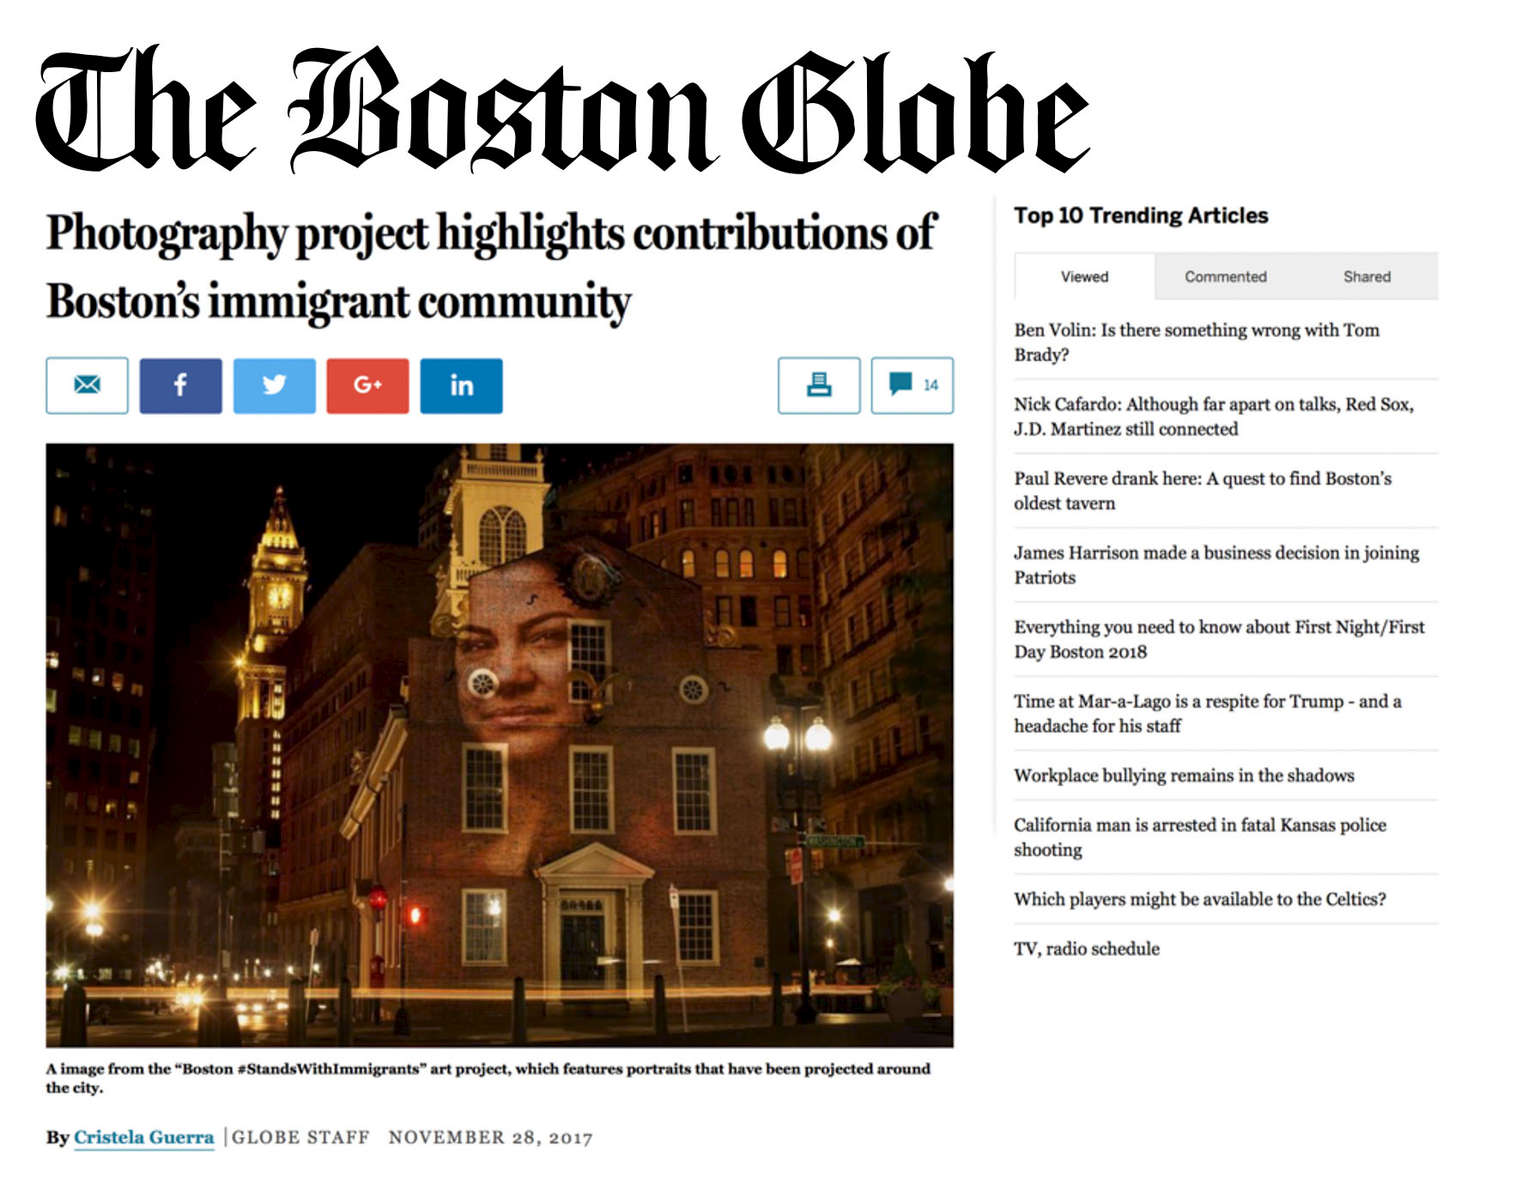 The Boston GlobeNOVEMBER 28, 2017Photography project highlights contributions of Boston's immigrant communityView Article